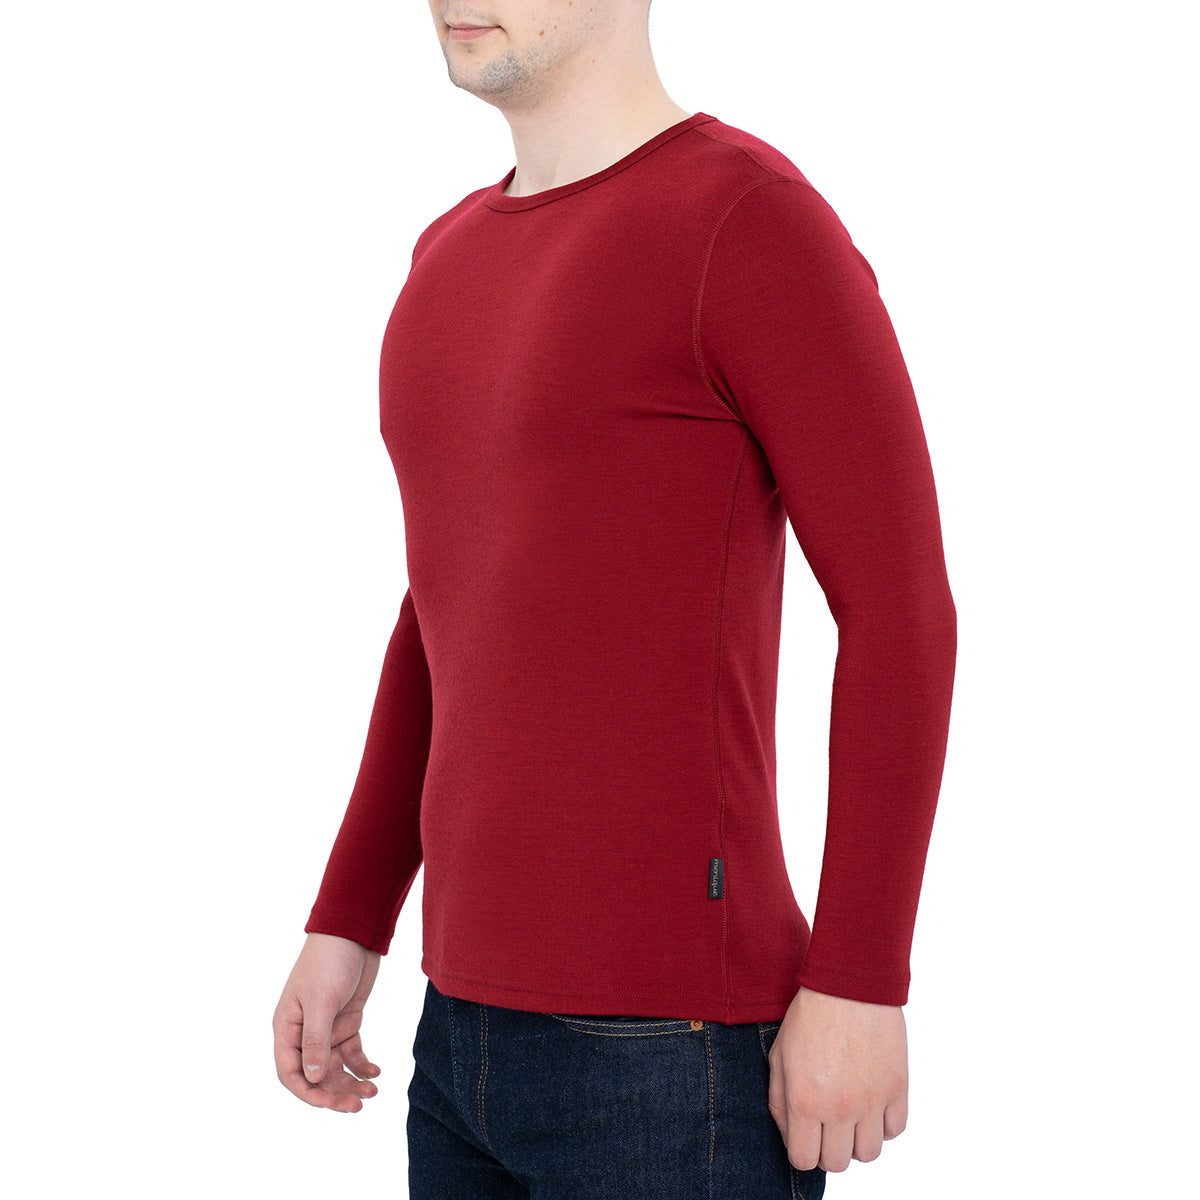 menique Men's Merino 250 Long Sleeve Crew Royal Cherry Color